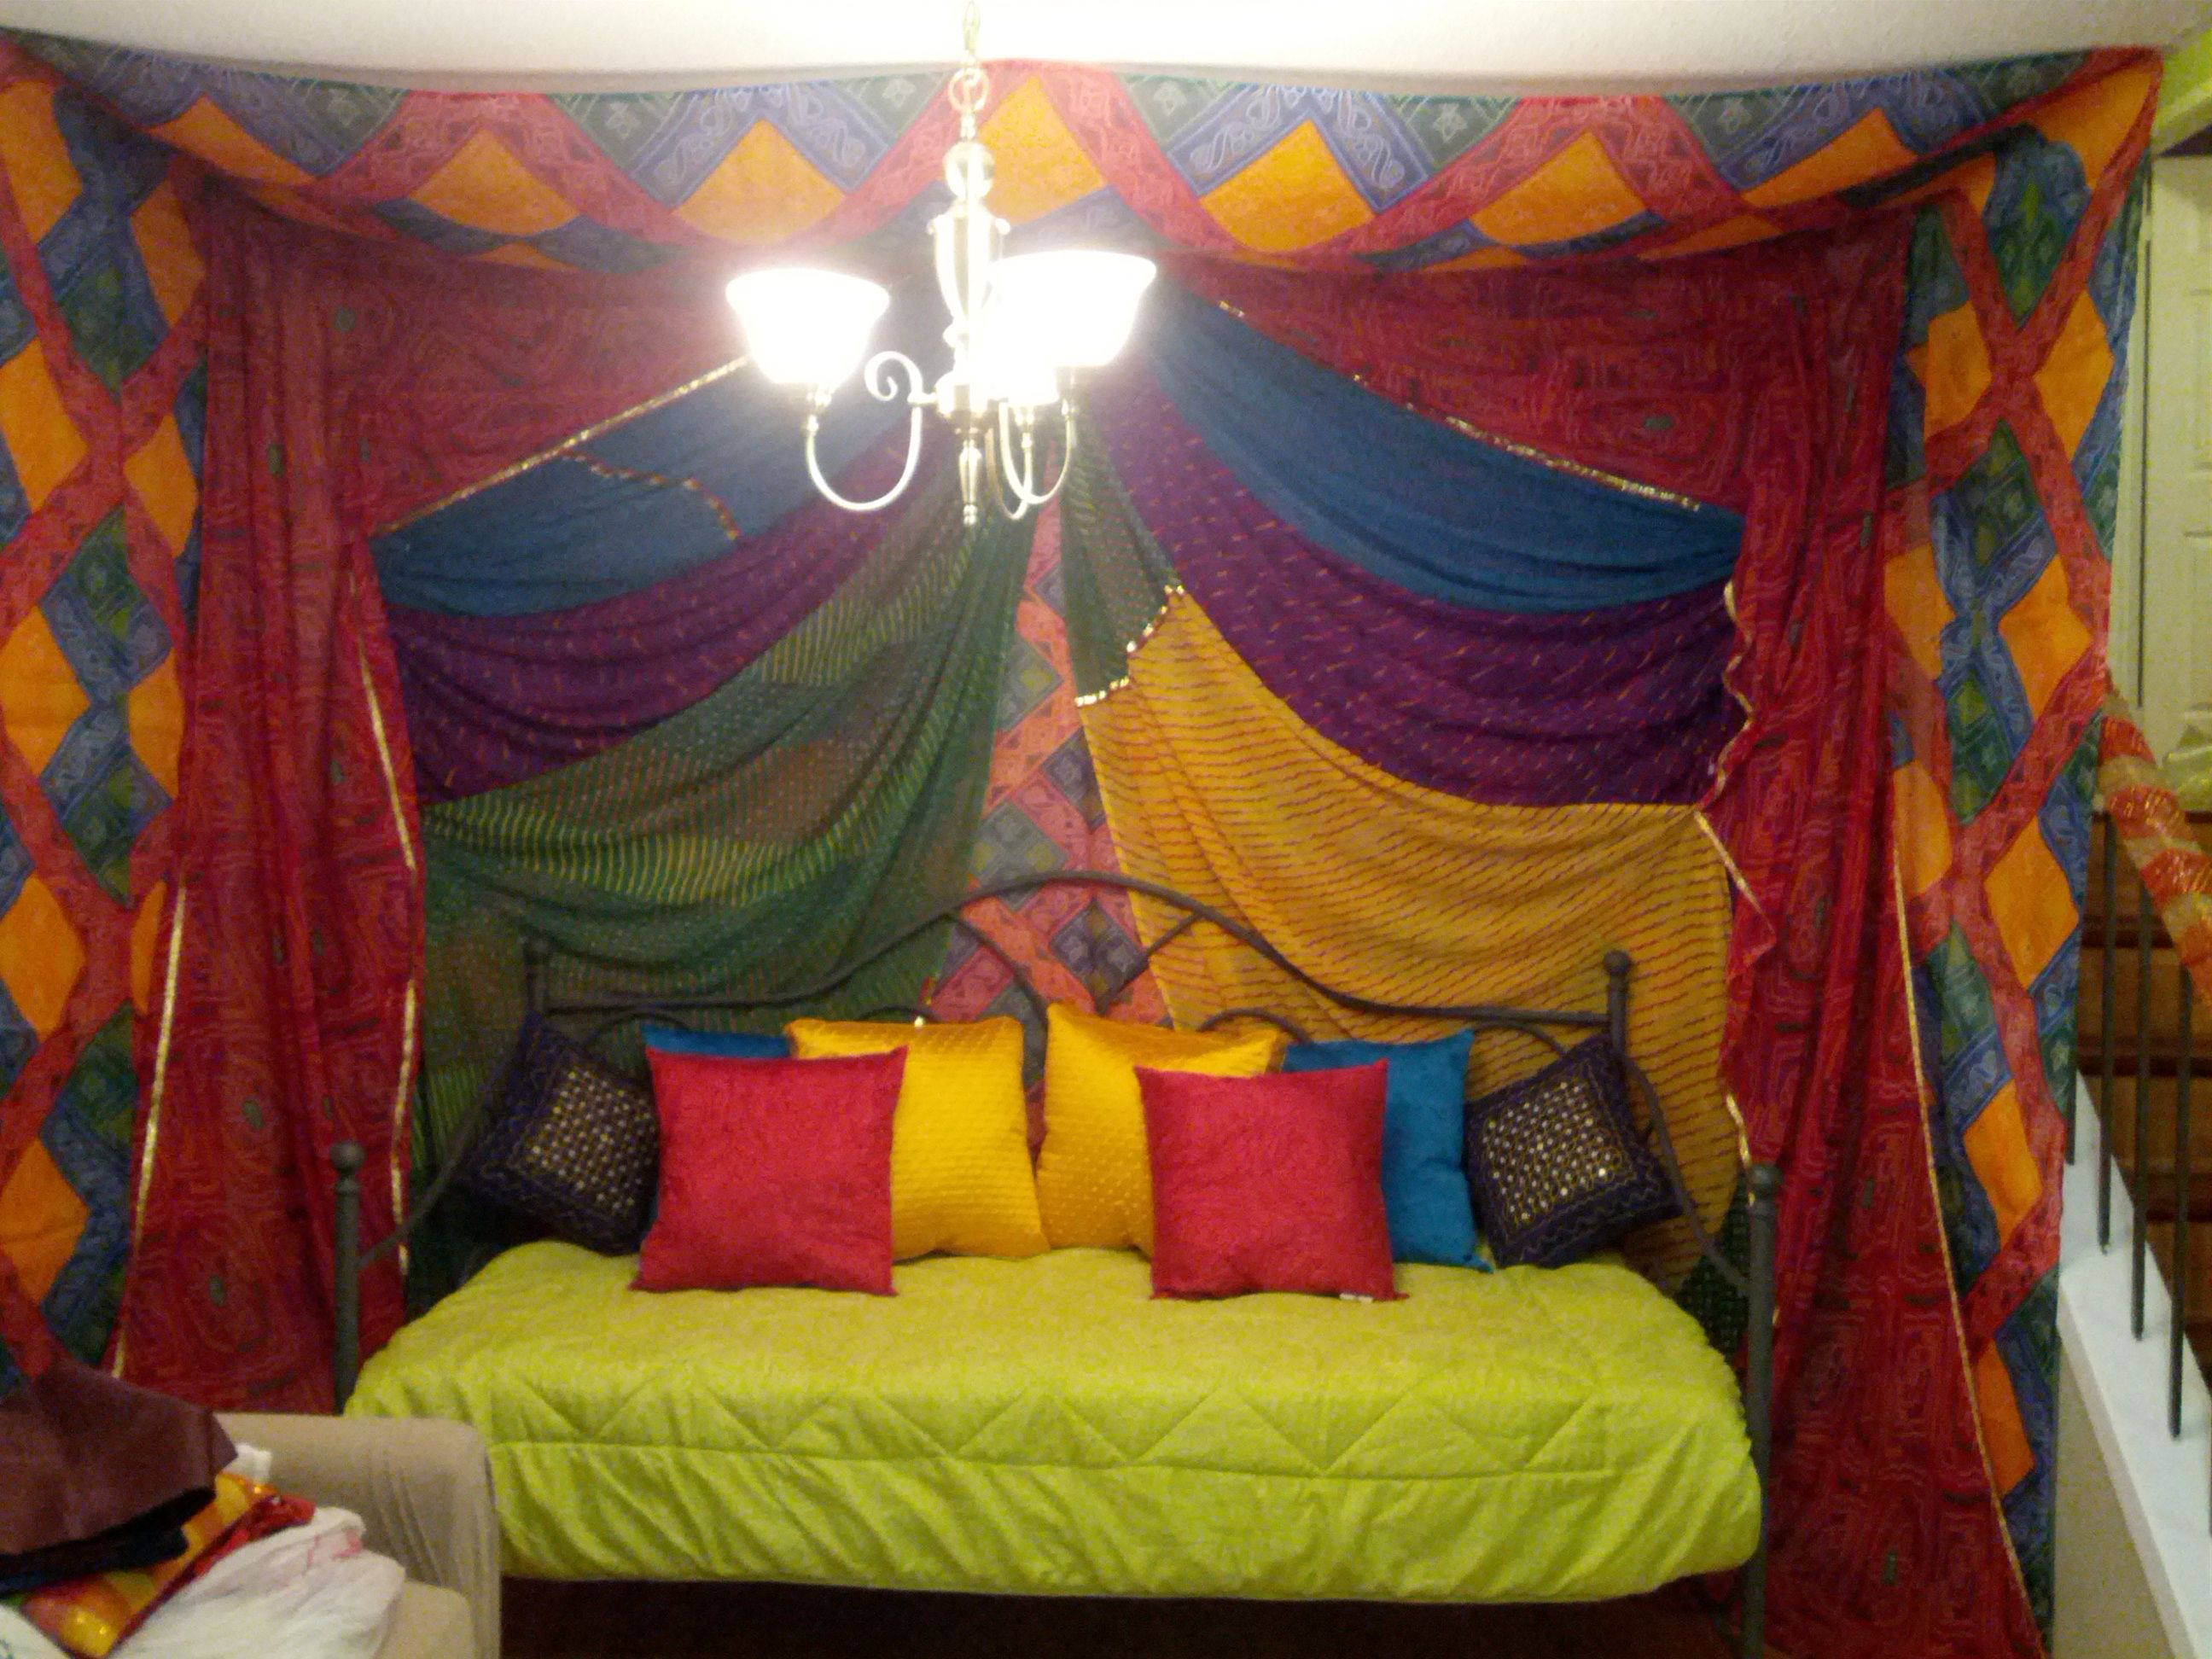 Indian wedding decor at home for a rajasthani inspired Decorations for the home